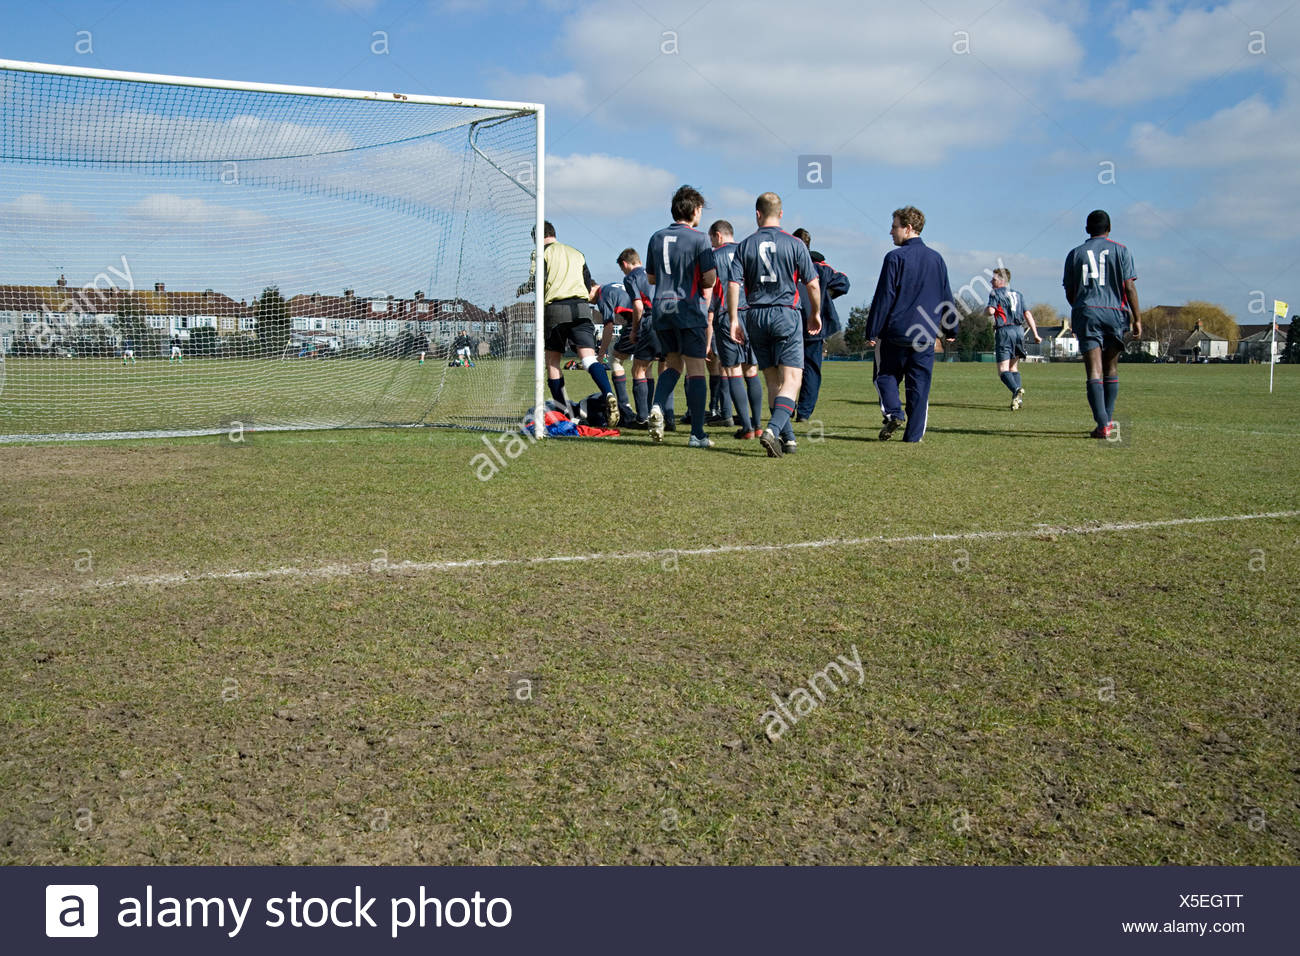 Football team leaving pitch - Stock Image